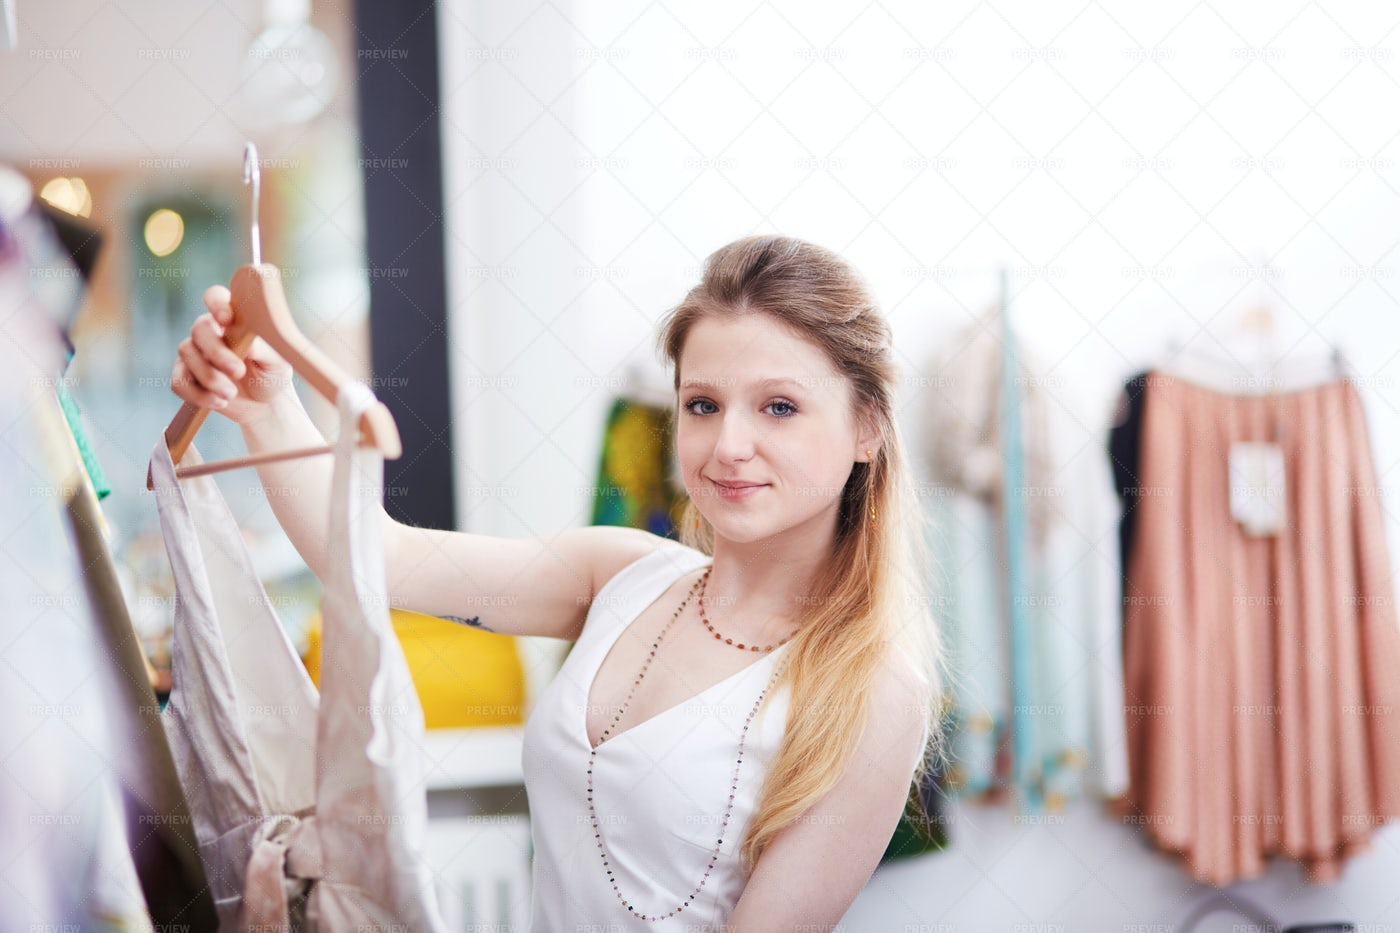 Browsing For A New Dress: Stock Photos